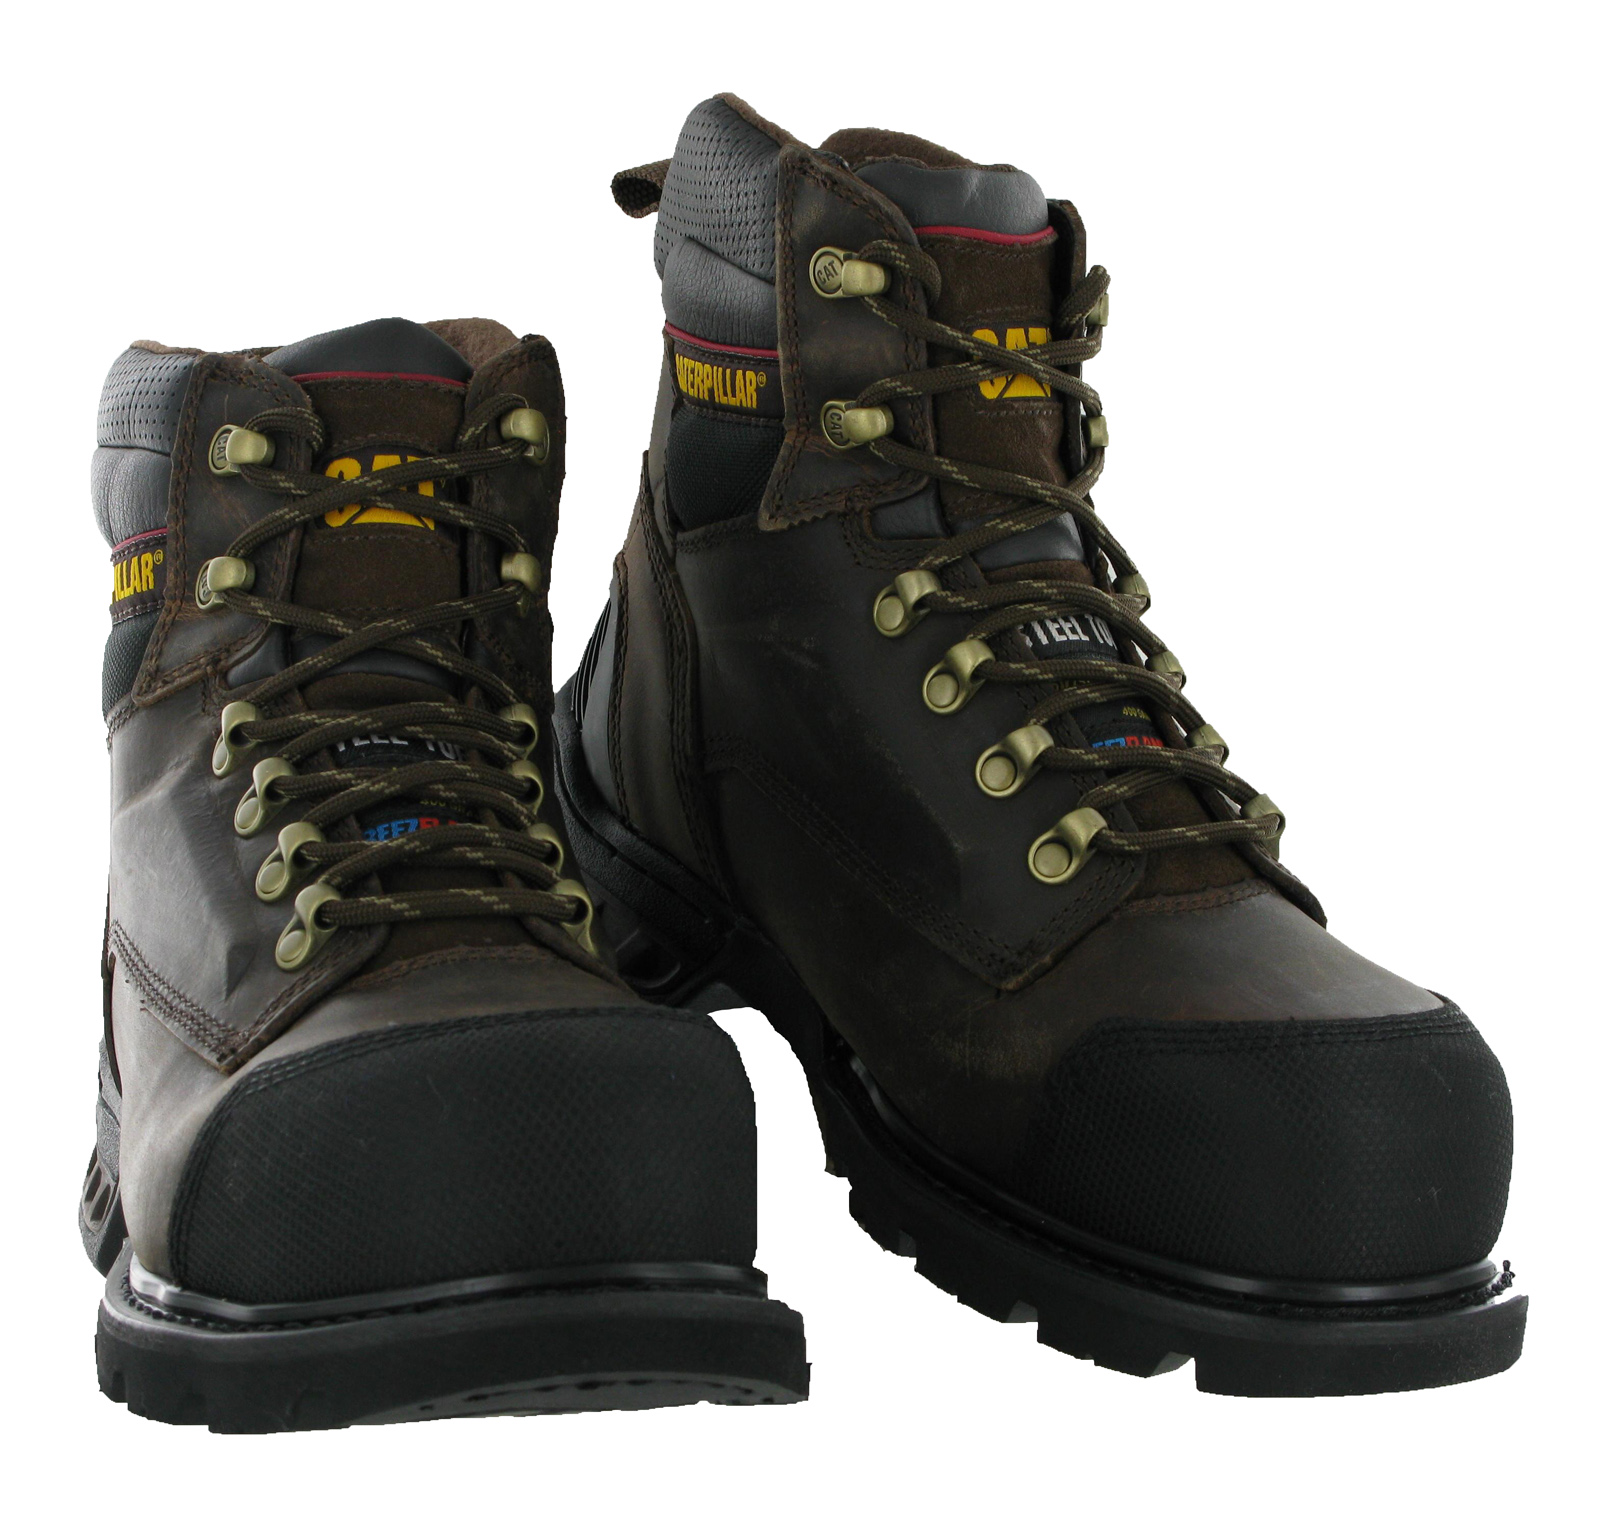 mens cat caterpillar spartan ff s3 oak steel toe cap safety work boots size 6 12 ebay. Black Bedroom Furniture Sets. Home Design Ideas